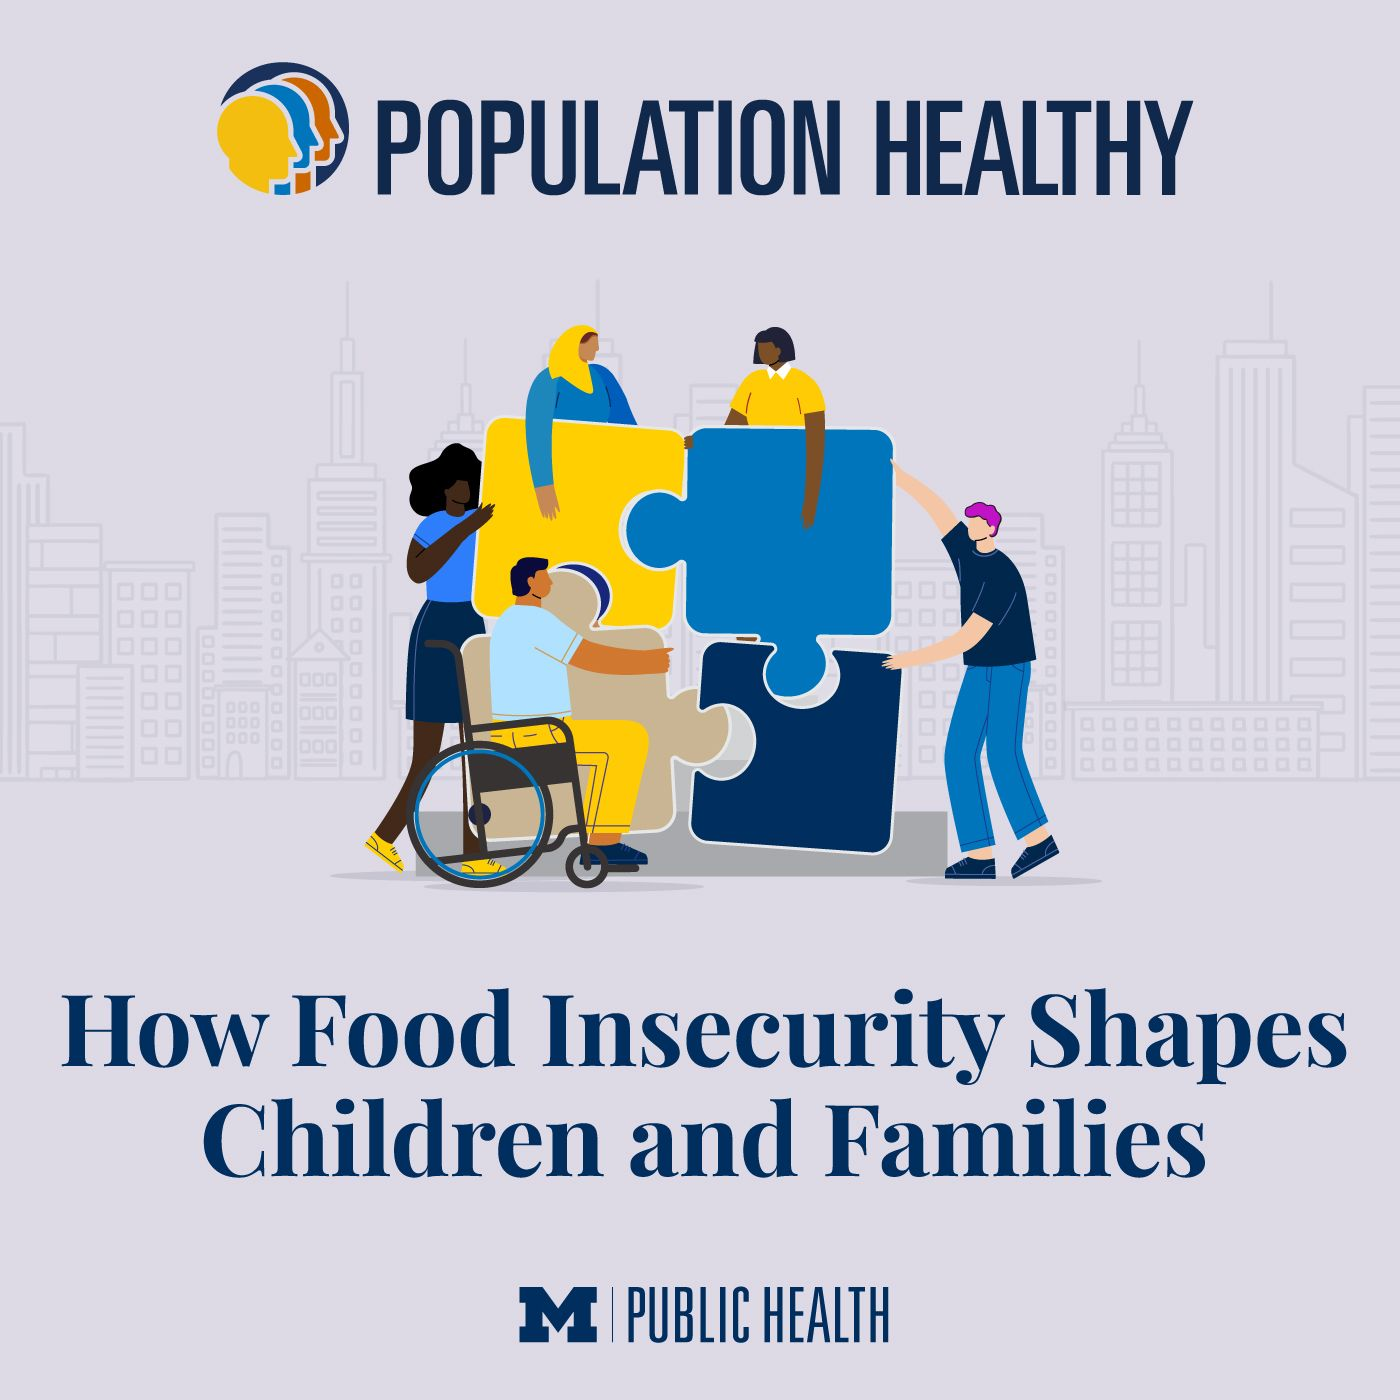 How Food Insecurity Shapes Children and Families